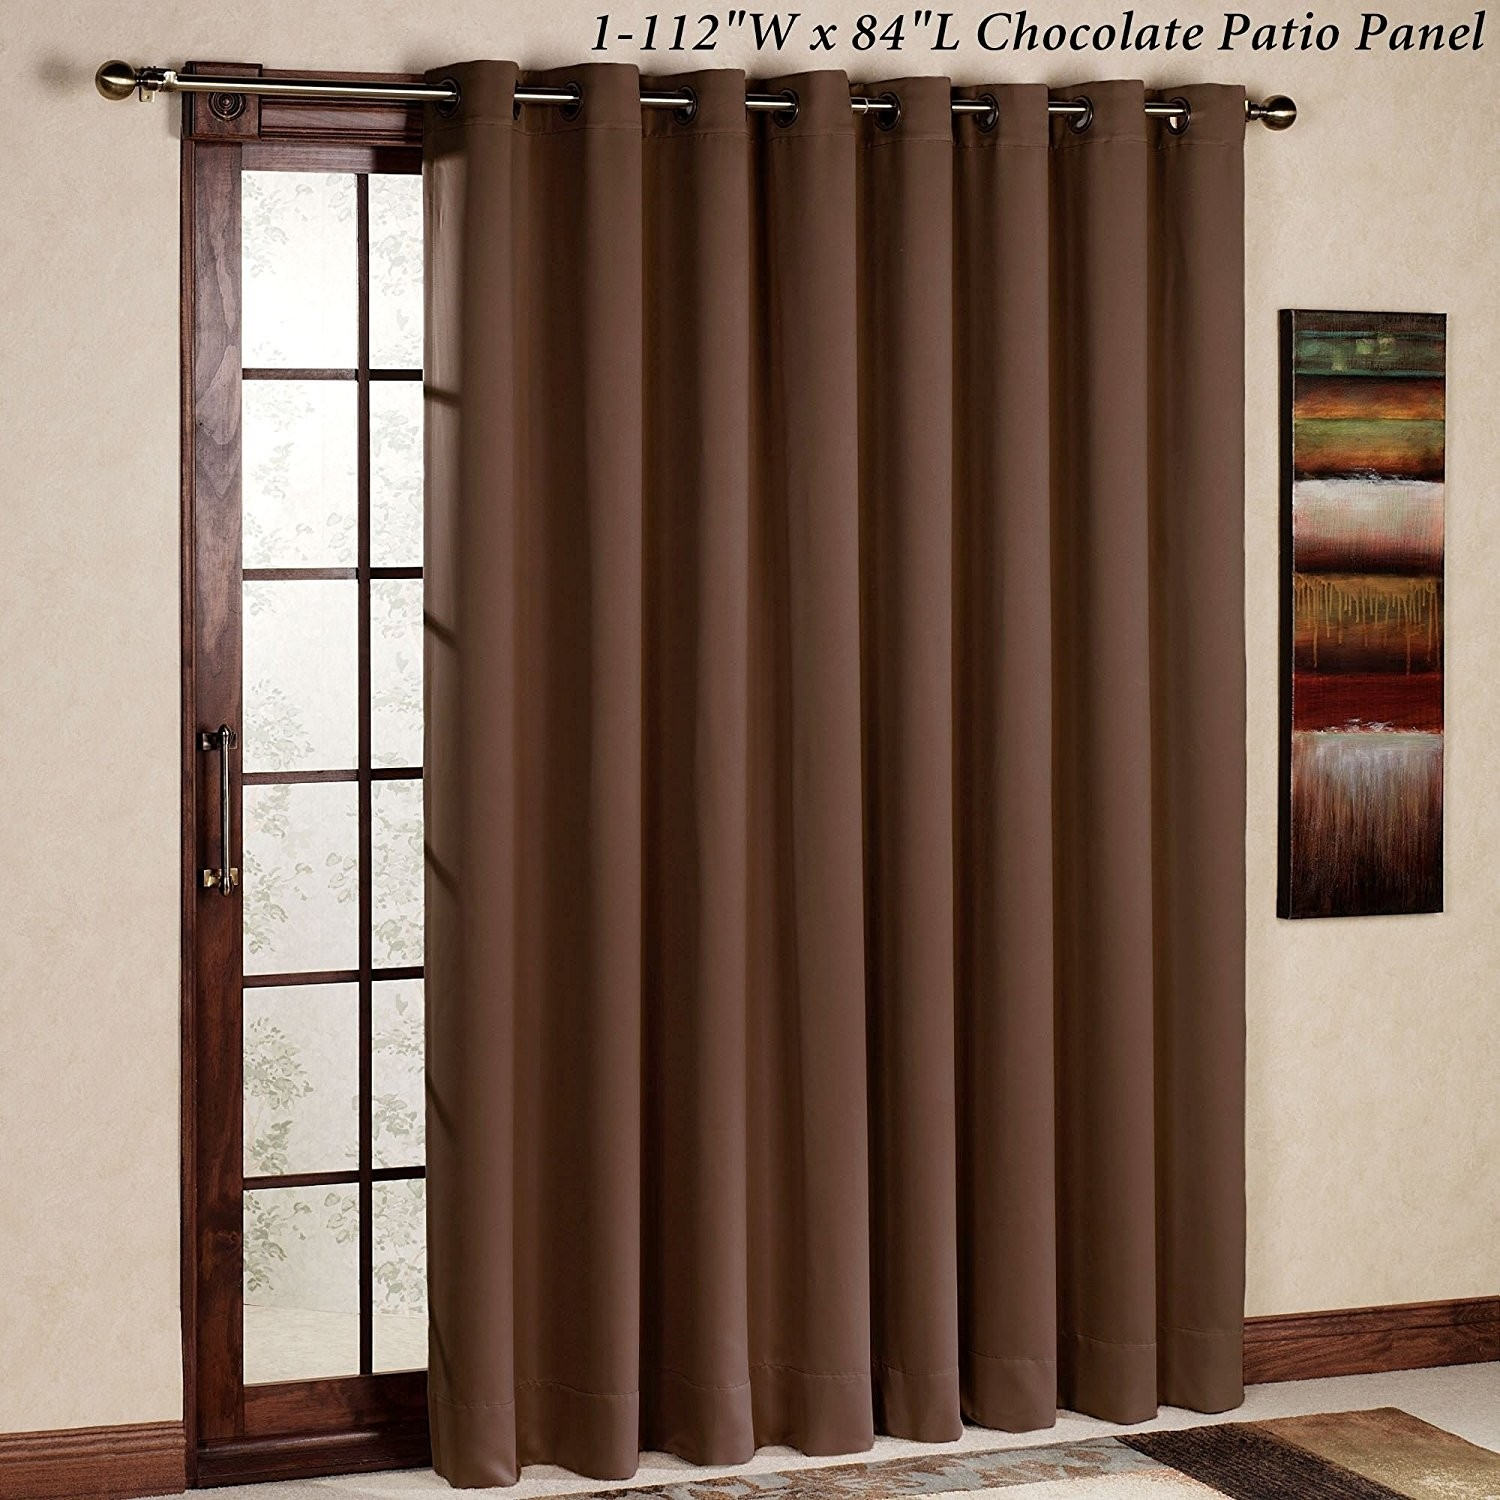 Rhf Wide Thermal Blackout Patio Door Curtain Panel Sliding Door Throughout Thermal Door Curtains (Image 14 of 15)